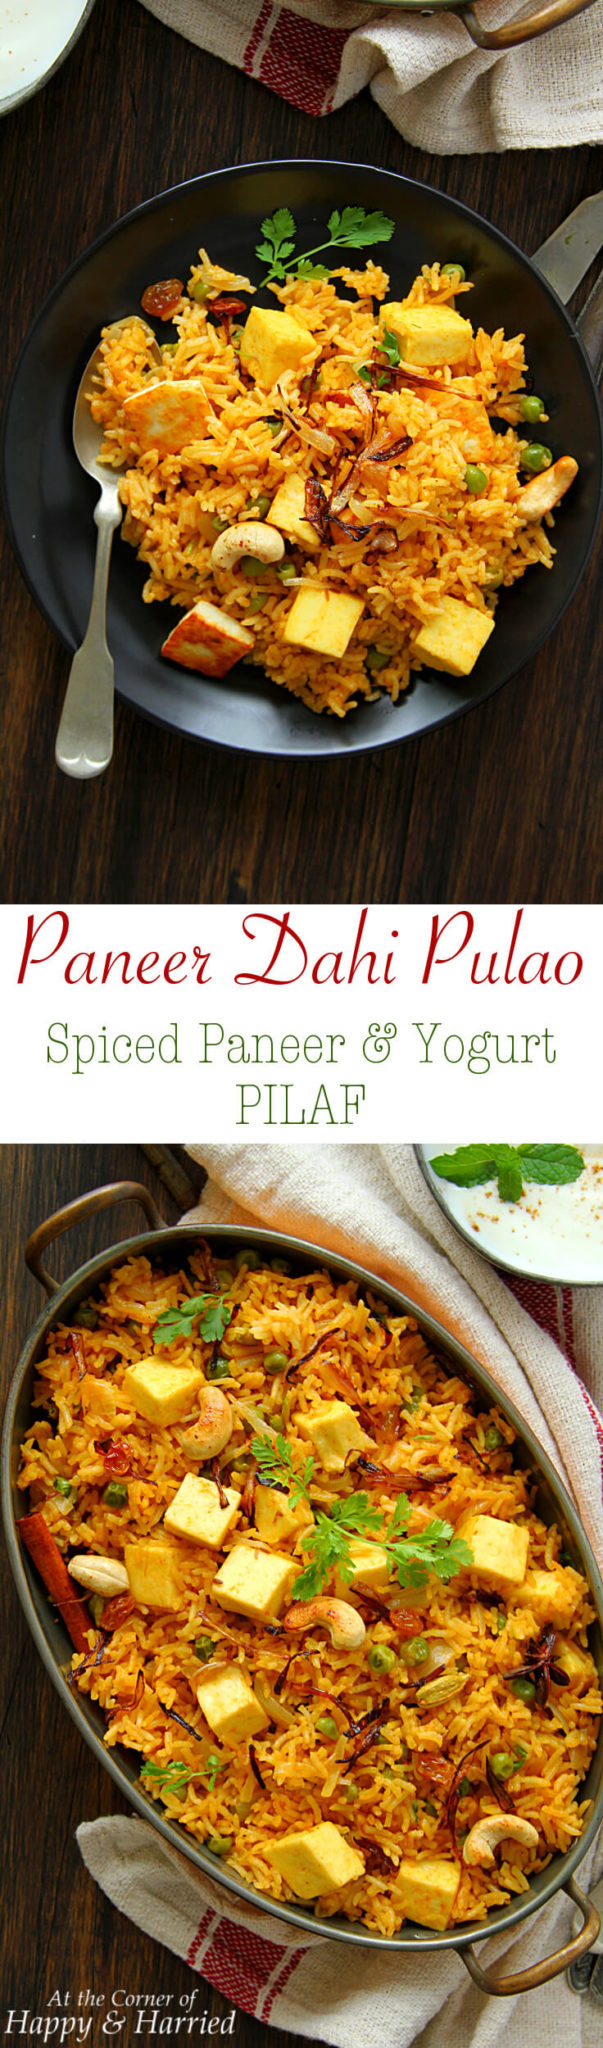 PANEER DAHI PULAO (SPICED PANEER & YOGURT PILAF) - HAPPY&HARRIED